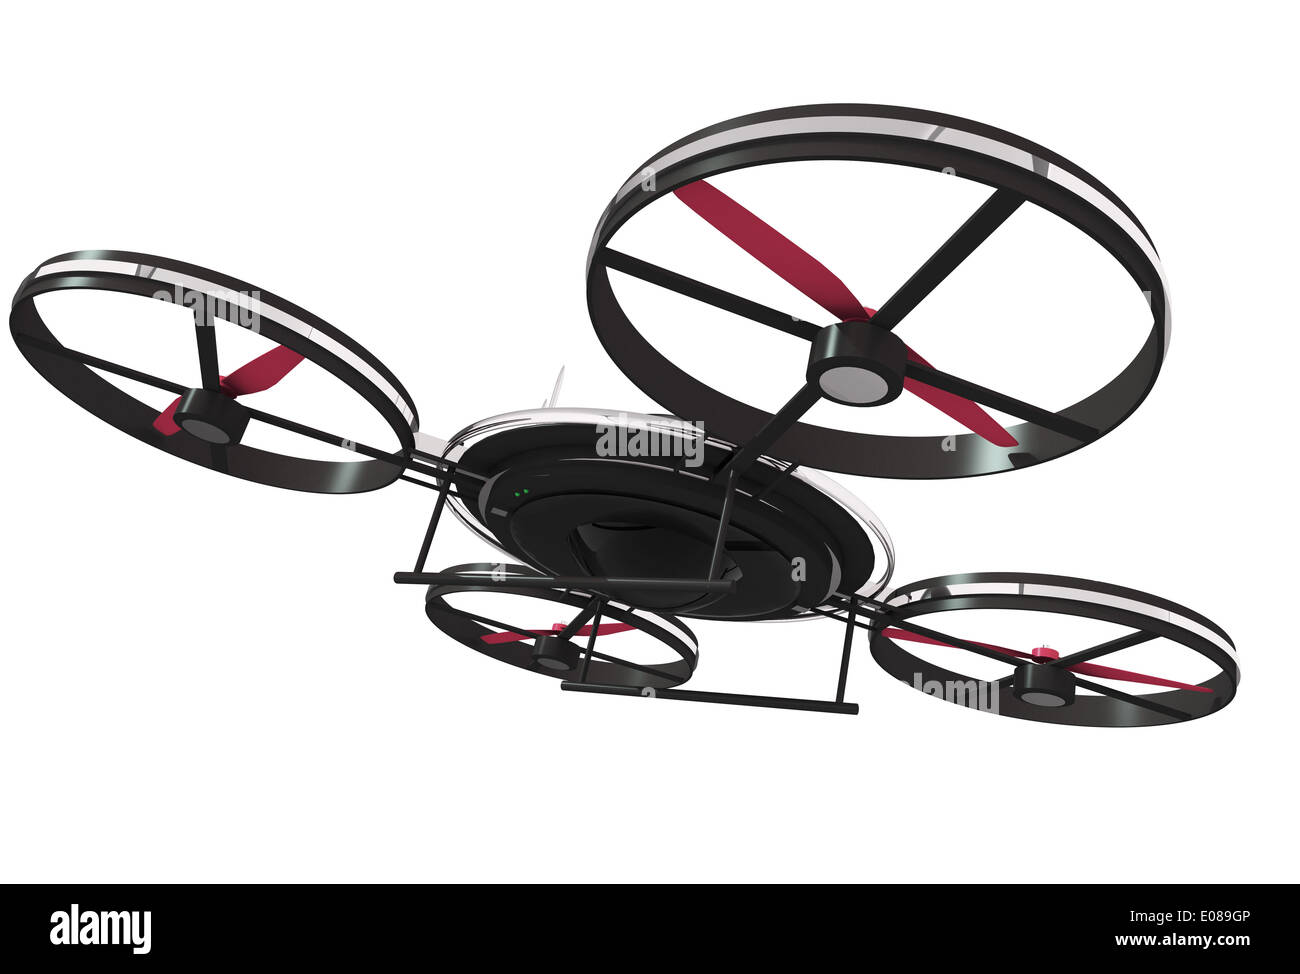 Drone Illustration 3D Isolated on White. Quadrocopter Technology - Stock Image